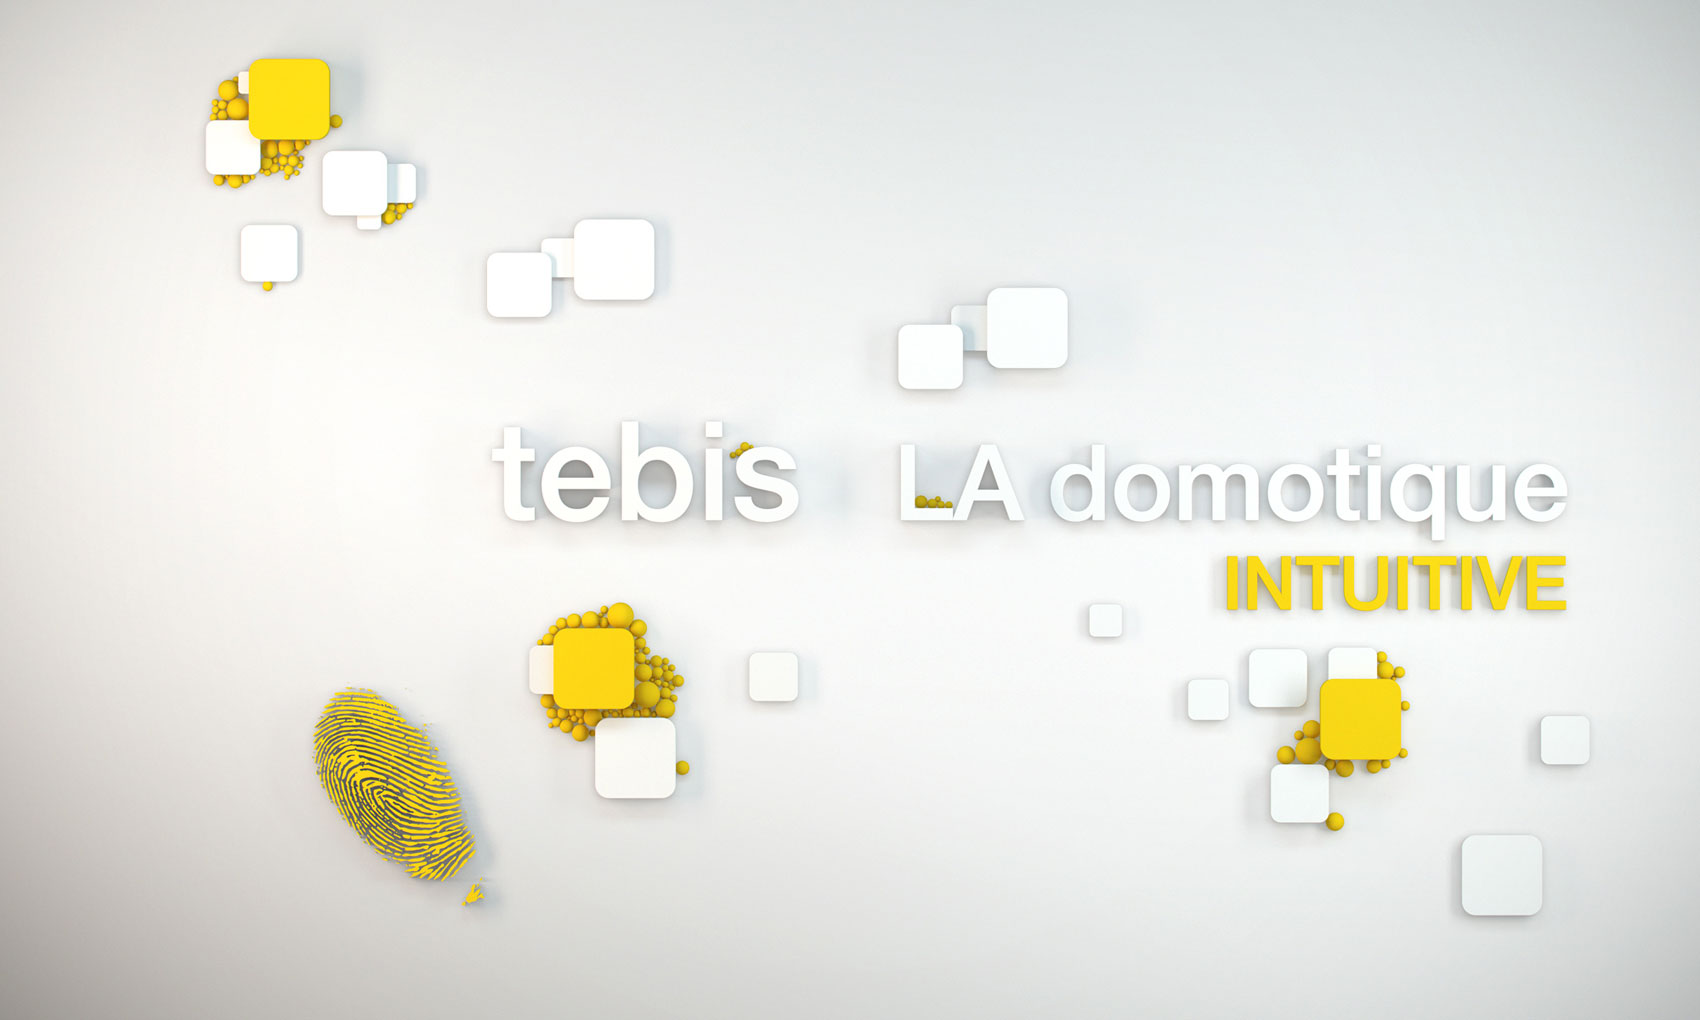 tebis-la-domotique-4